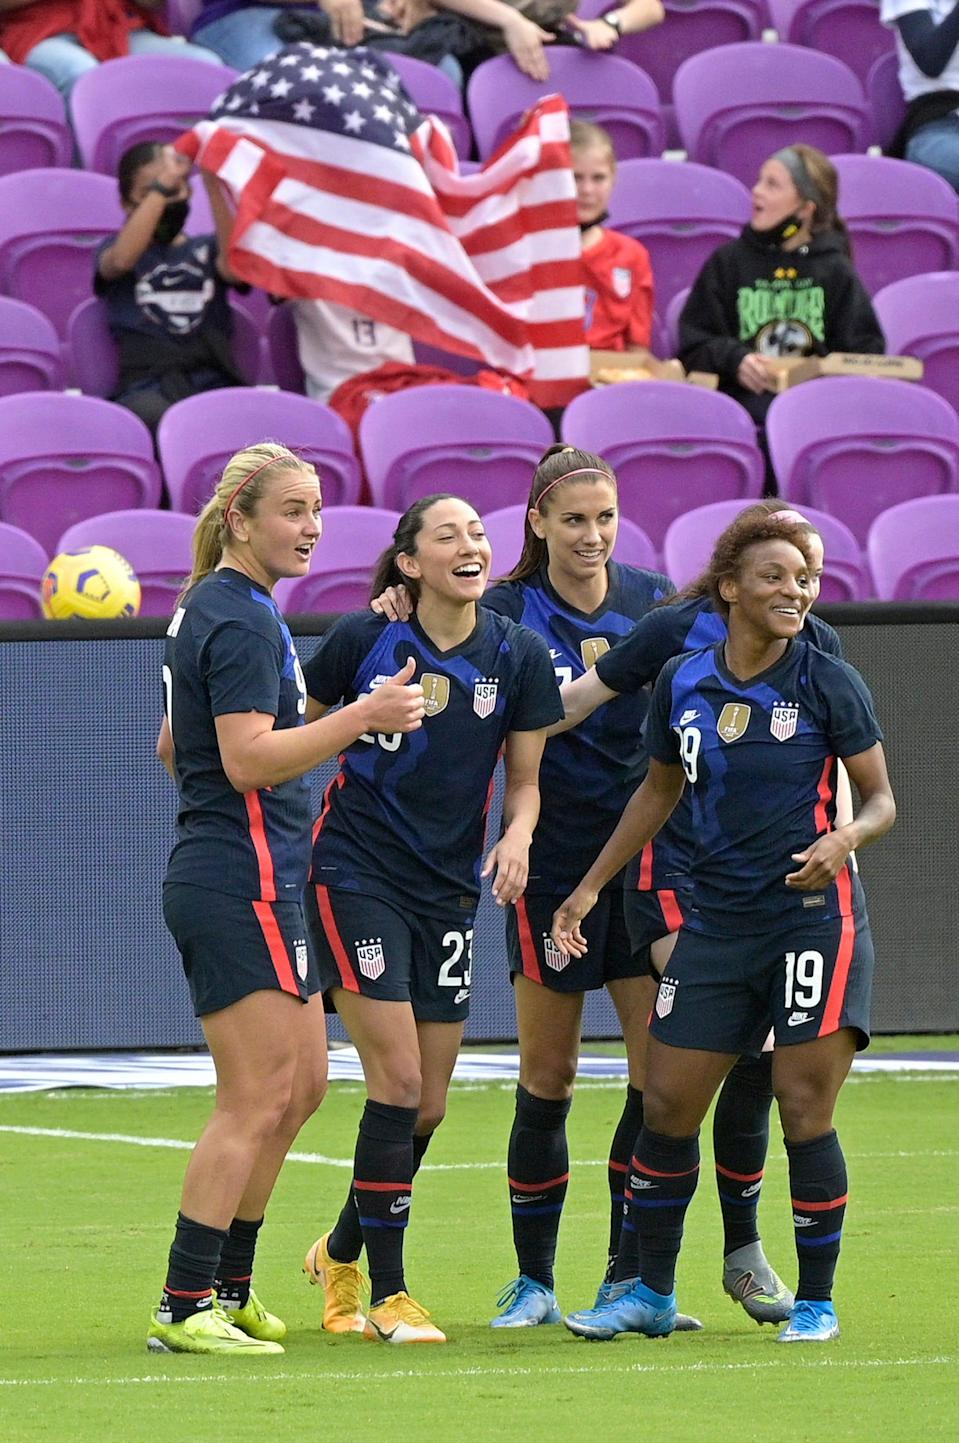 United States forward Christen Press, second from left, is congratulated by teammates Lindsey Horan, left, Alex Morgan, and Crystal Dunn (19) after Press scored a goal during the first half of a SheBelieves Cup match against Brazil on Sunday, Feb. 21.